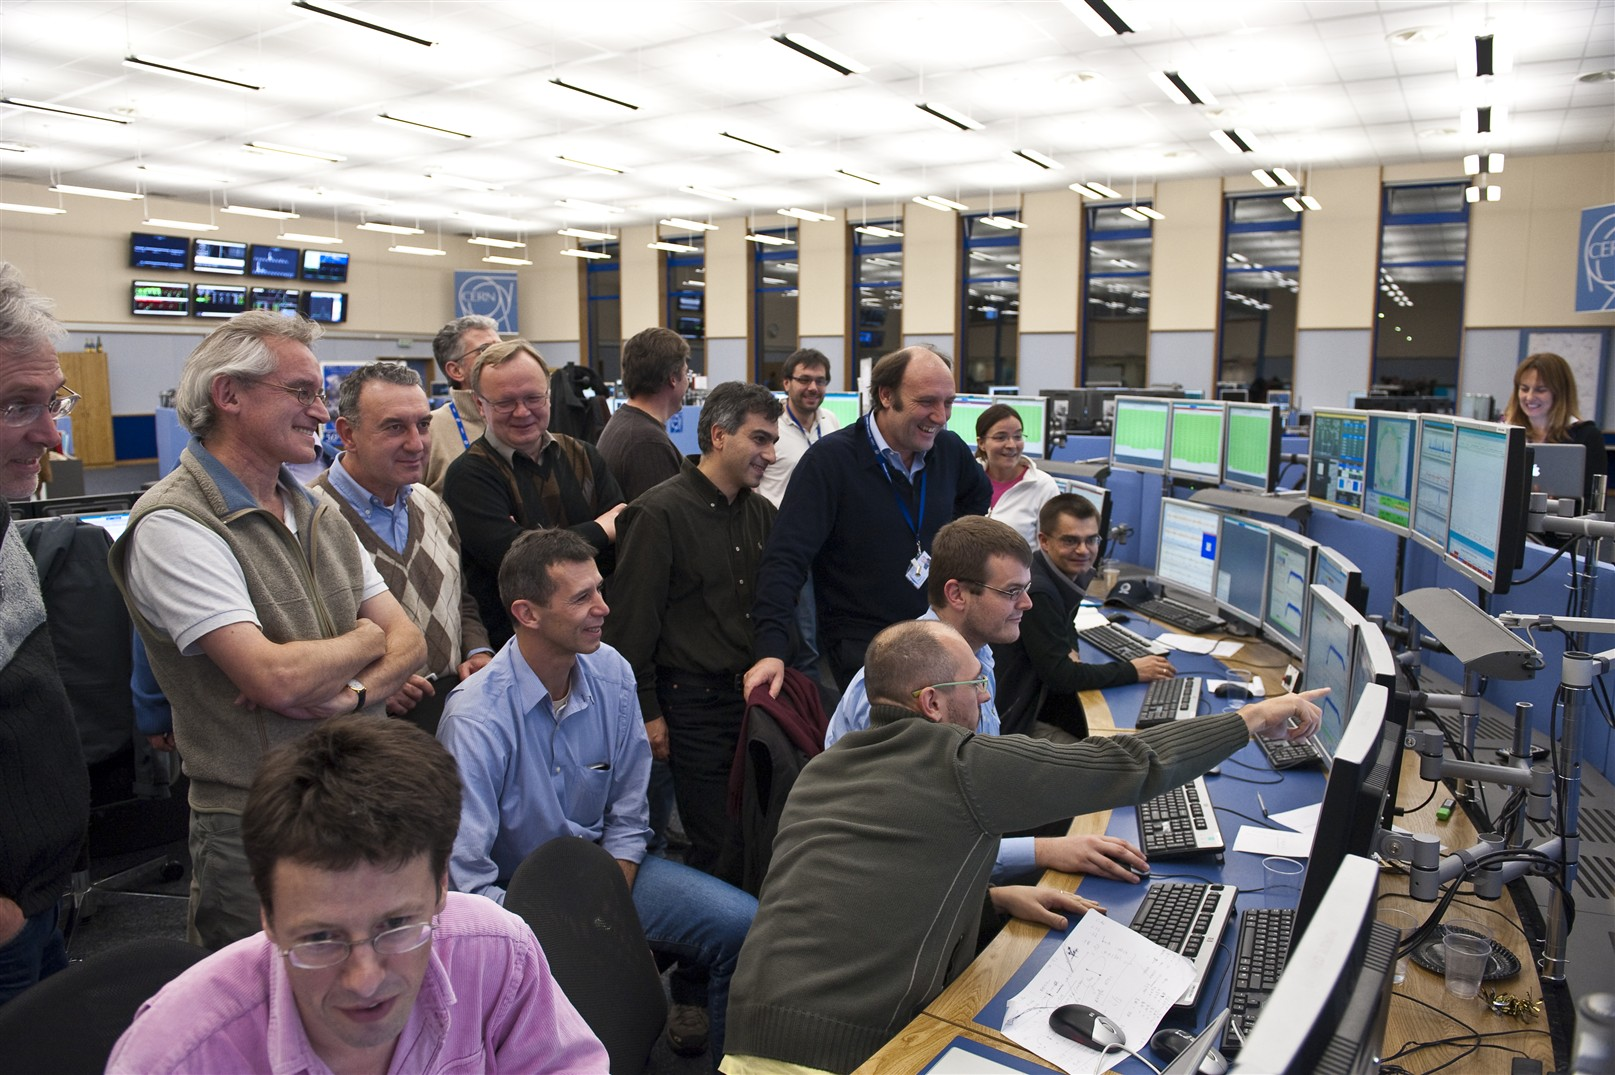 On 30 November, energy record for the LHC, twin beams at 1.18 TeV